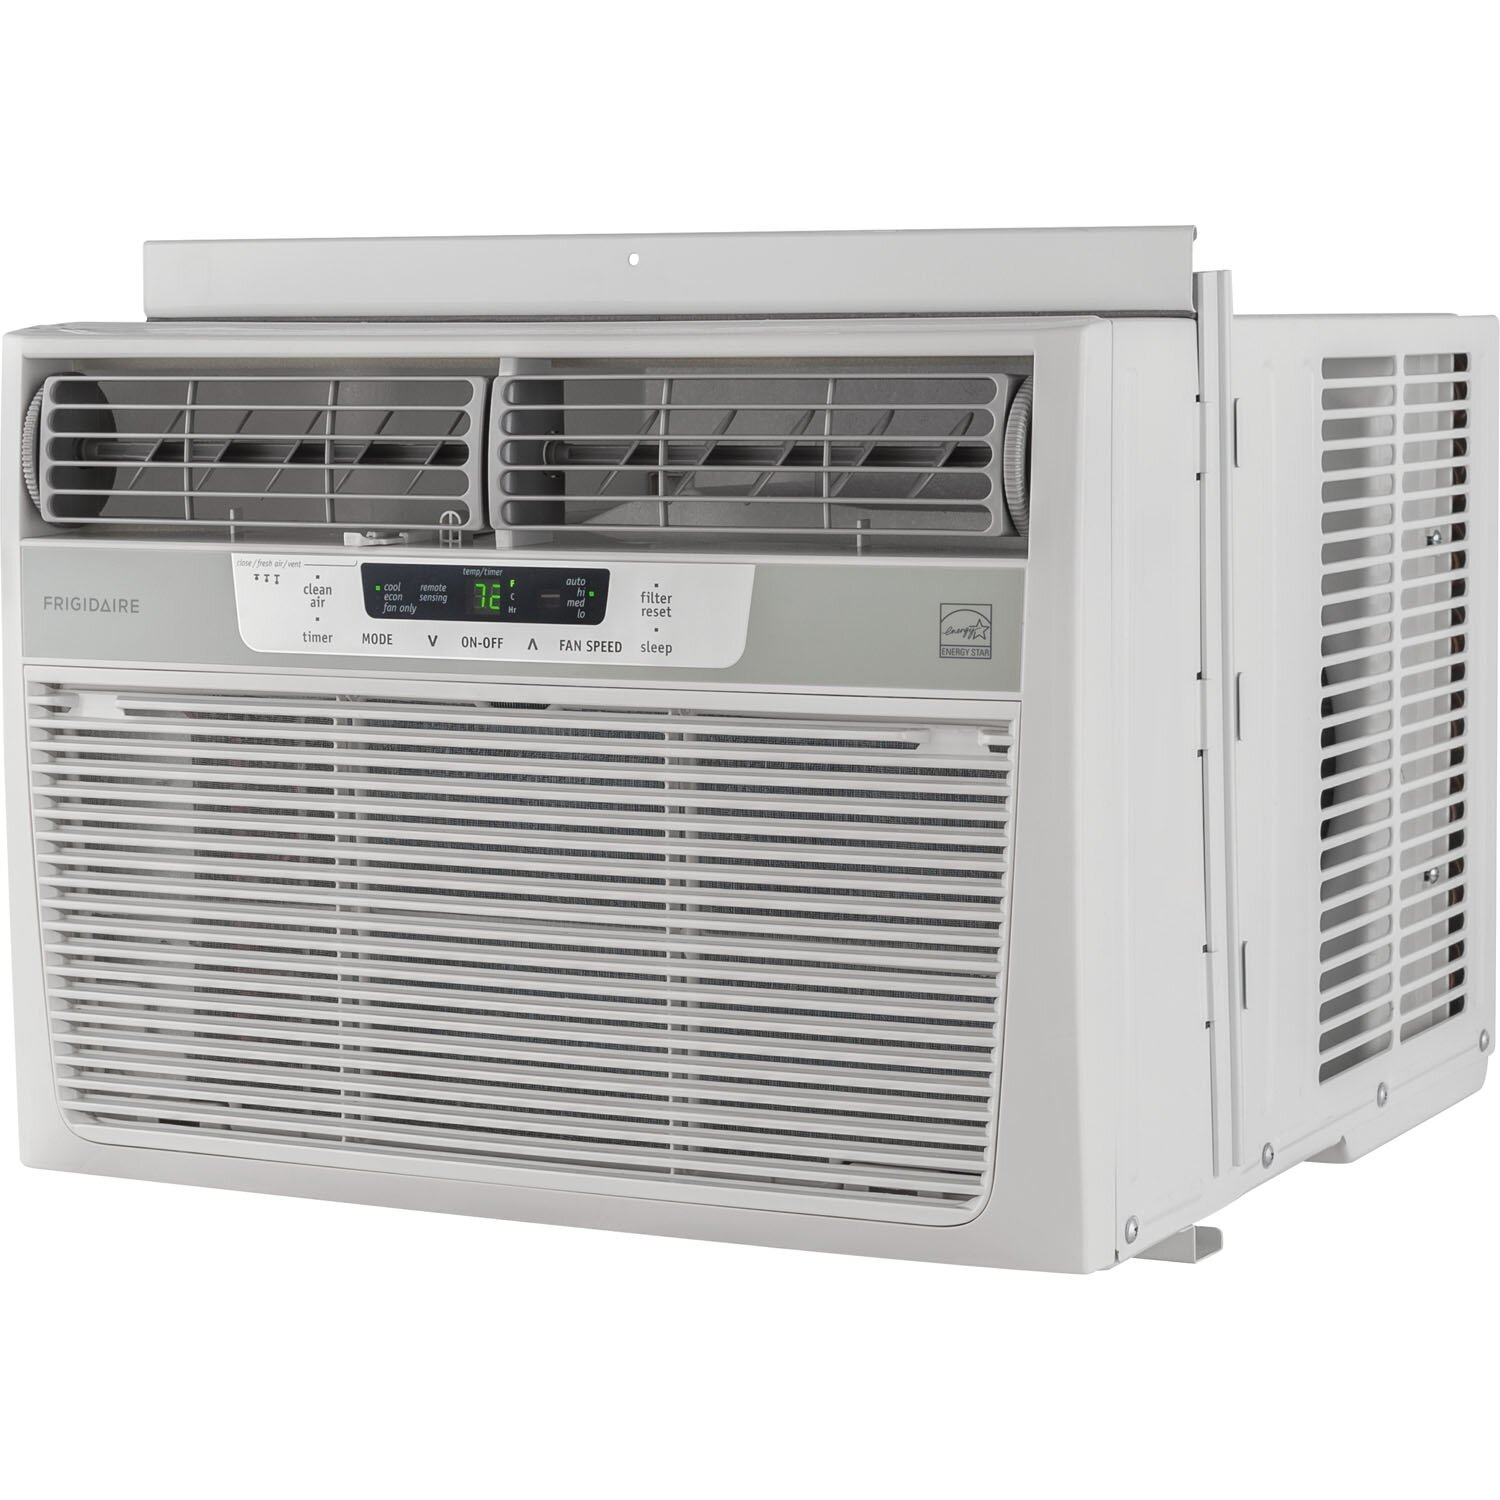 frigidaire 10 000 btu energy star window compact air